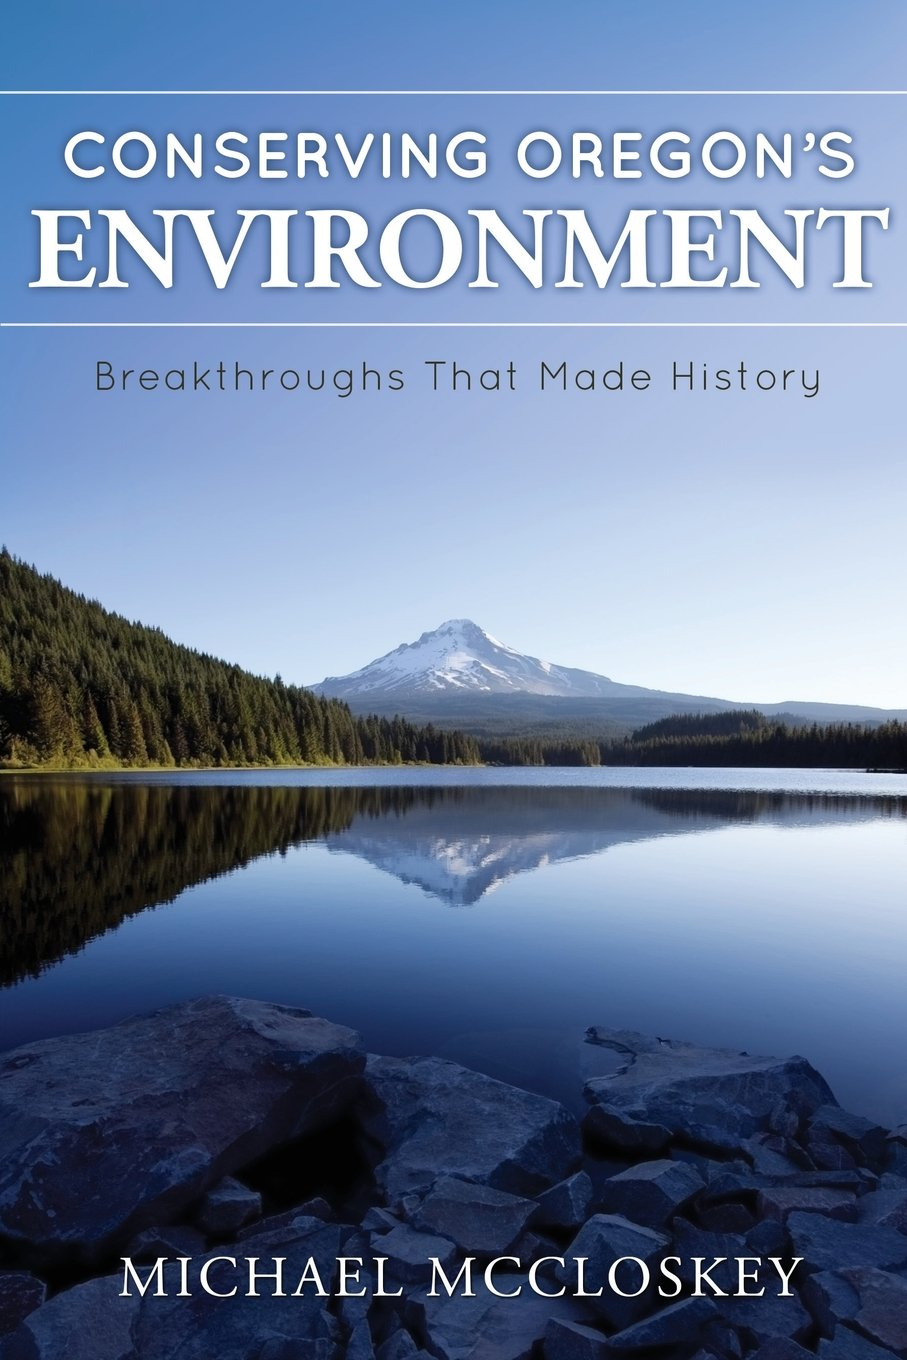 Conserving Oregon's Environment: Breakthroughs That Made History pdf